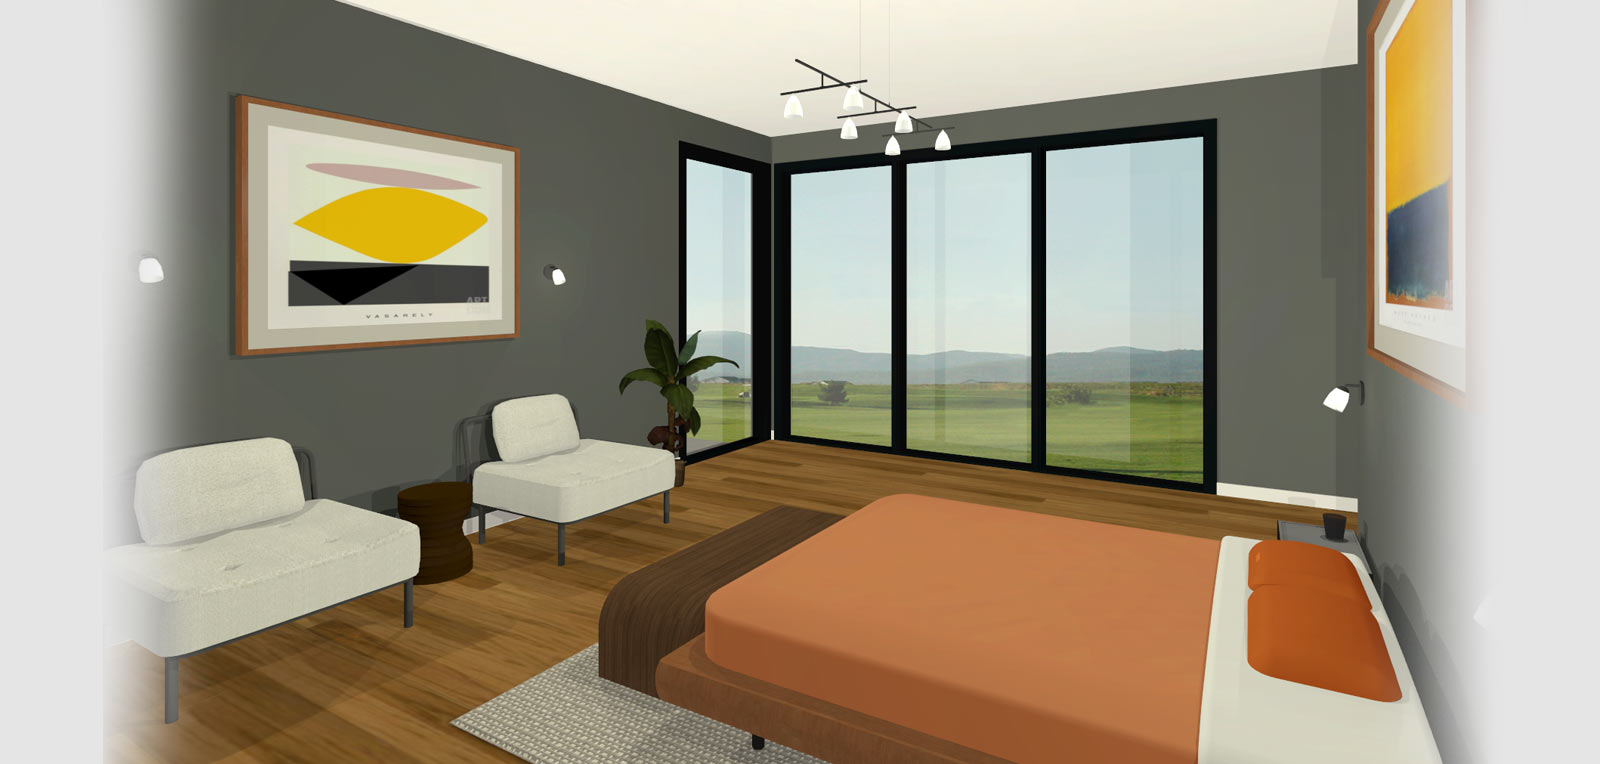 Home designer interior design software for Interior planning software